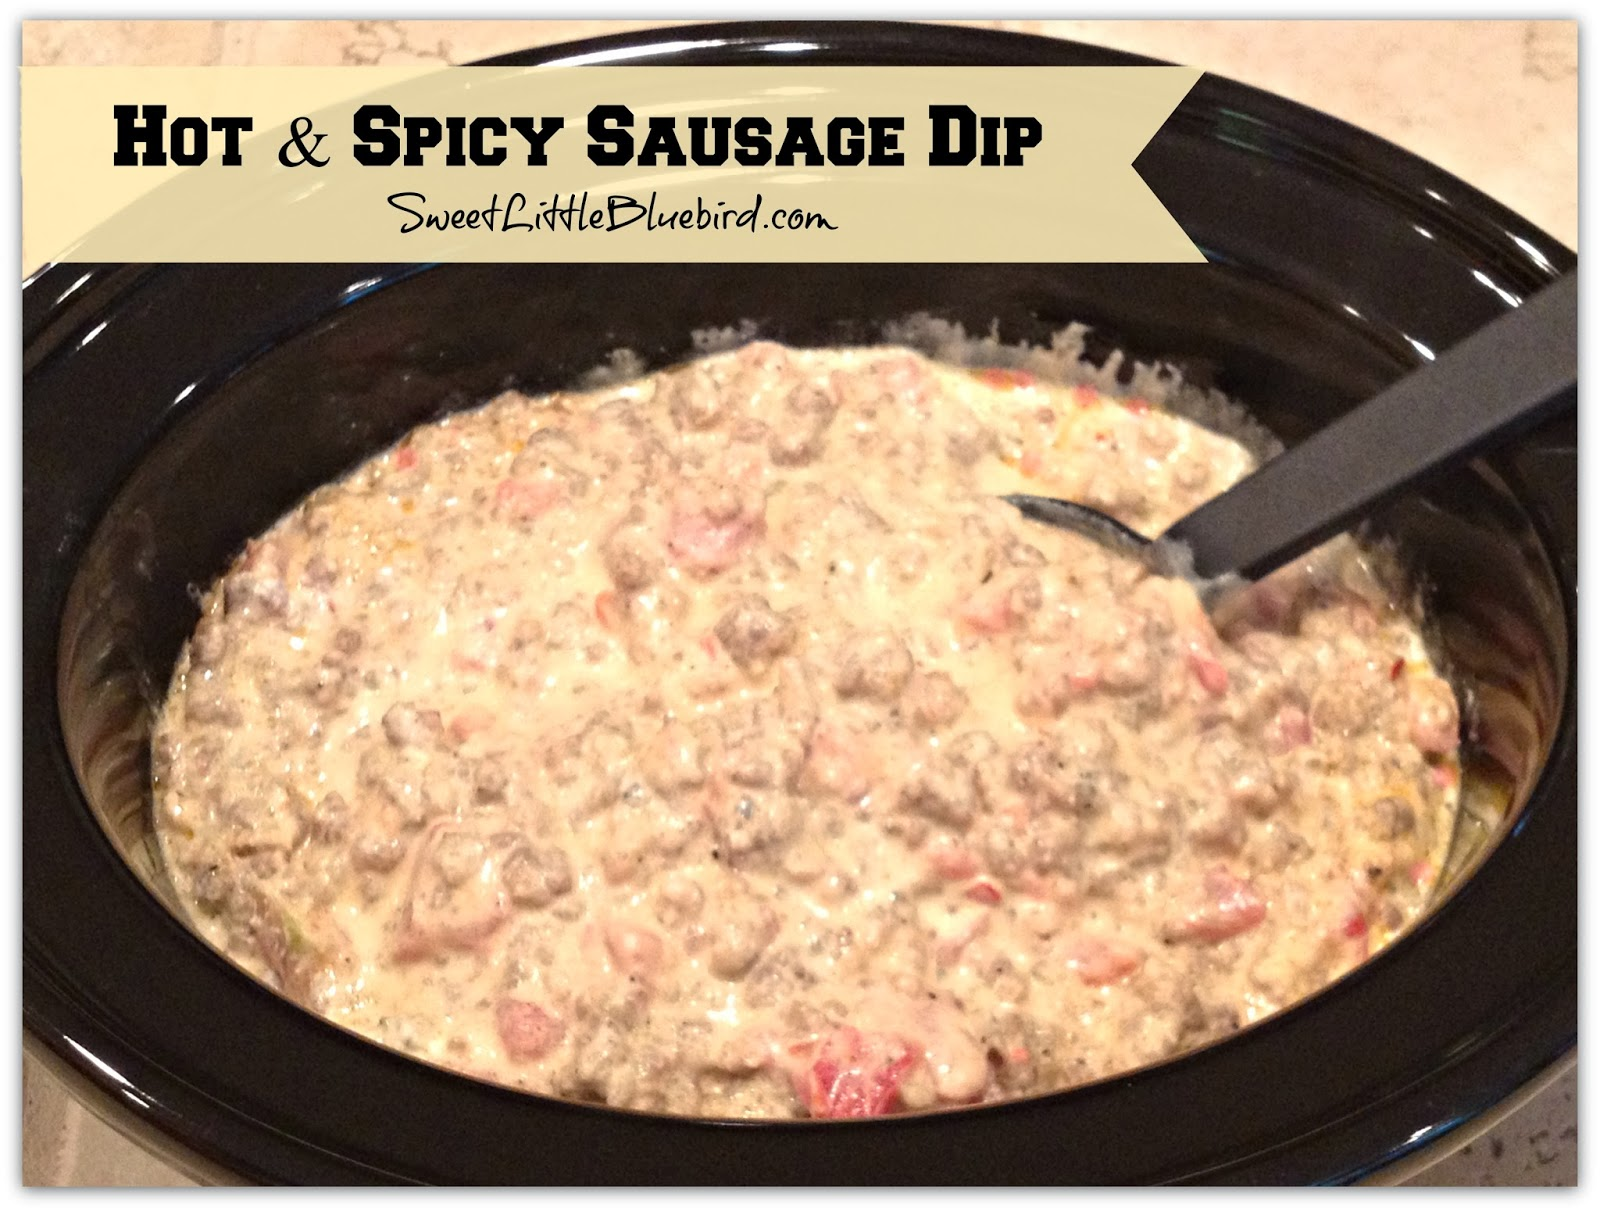 Quick & Easy, Hot & Spicy Sausage Dip, Only 3 Ingredients - This cream cheese, rotel and sausage dip is a crowd pleasing appetizer that's perfect for parties, game day, holidays and Skip to primary navigation.